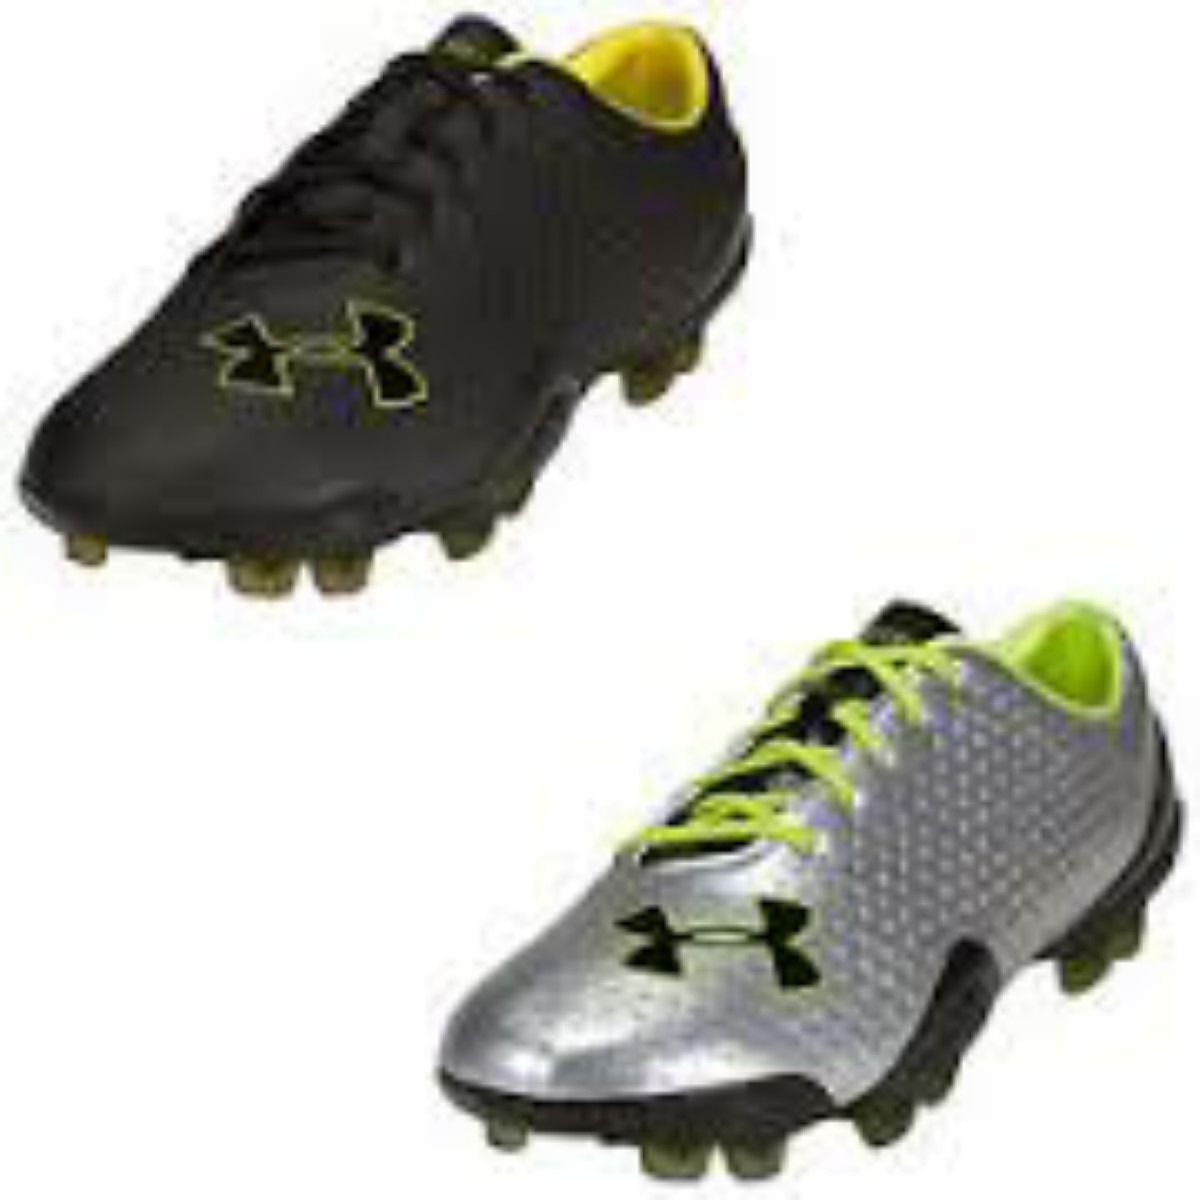 5367381b85936 Tacos de fútbol under armour original en mercado libre jpg 1200x1200 Tacos de  futbol under armour